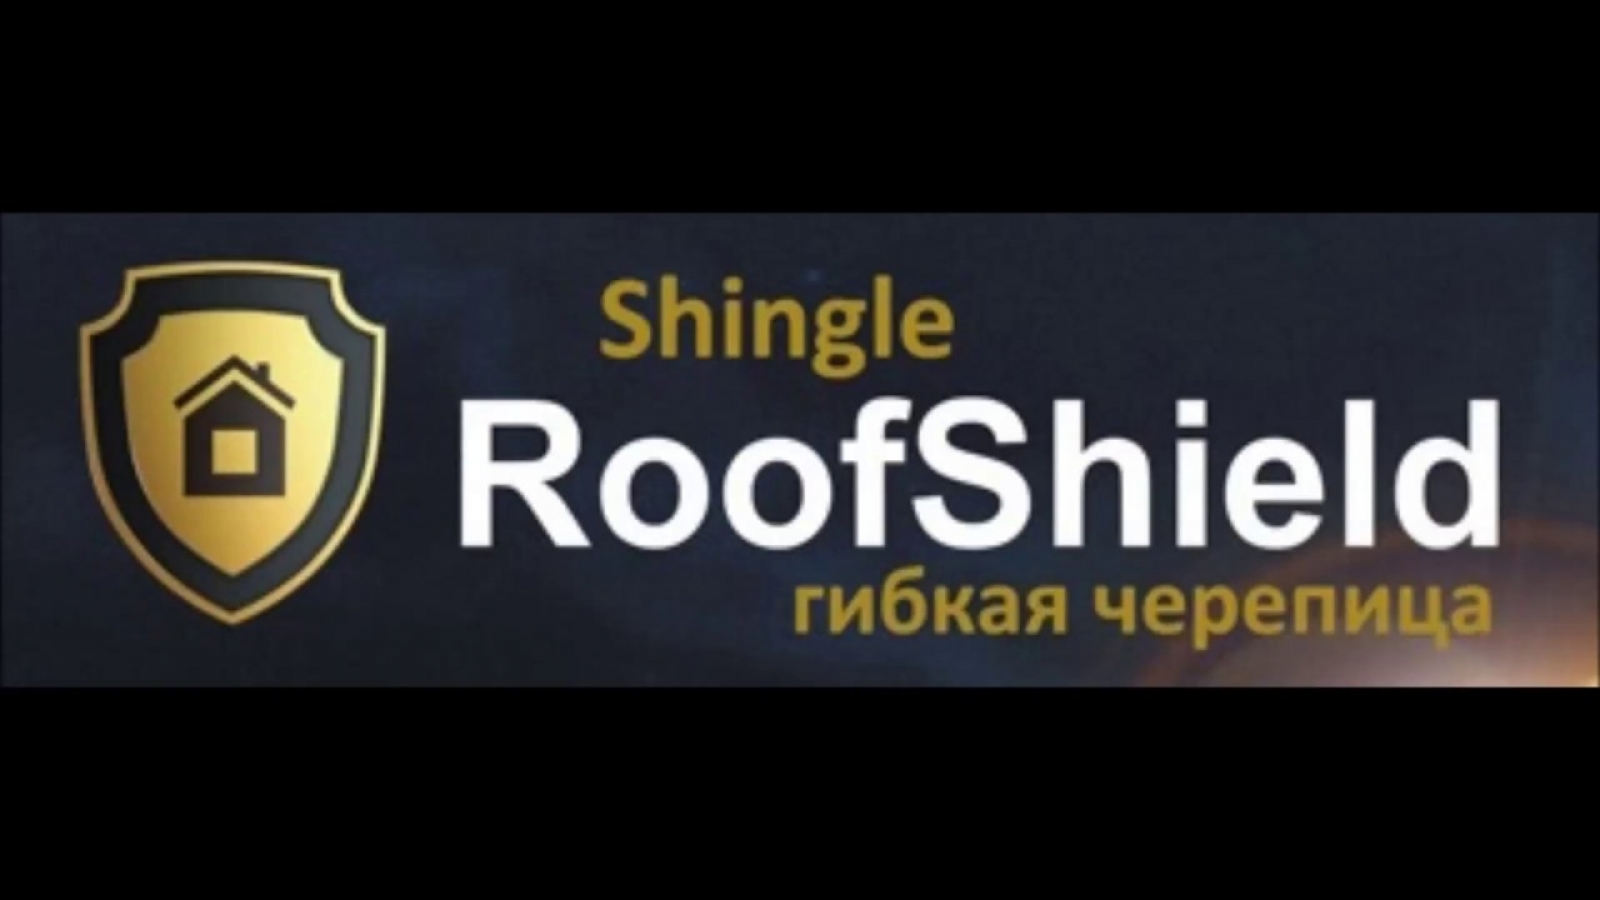 roofshield2